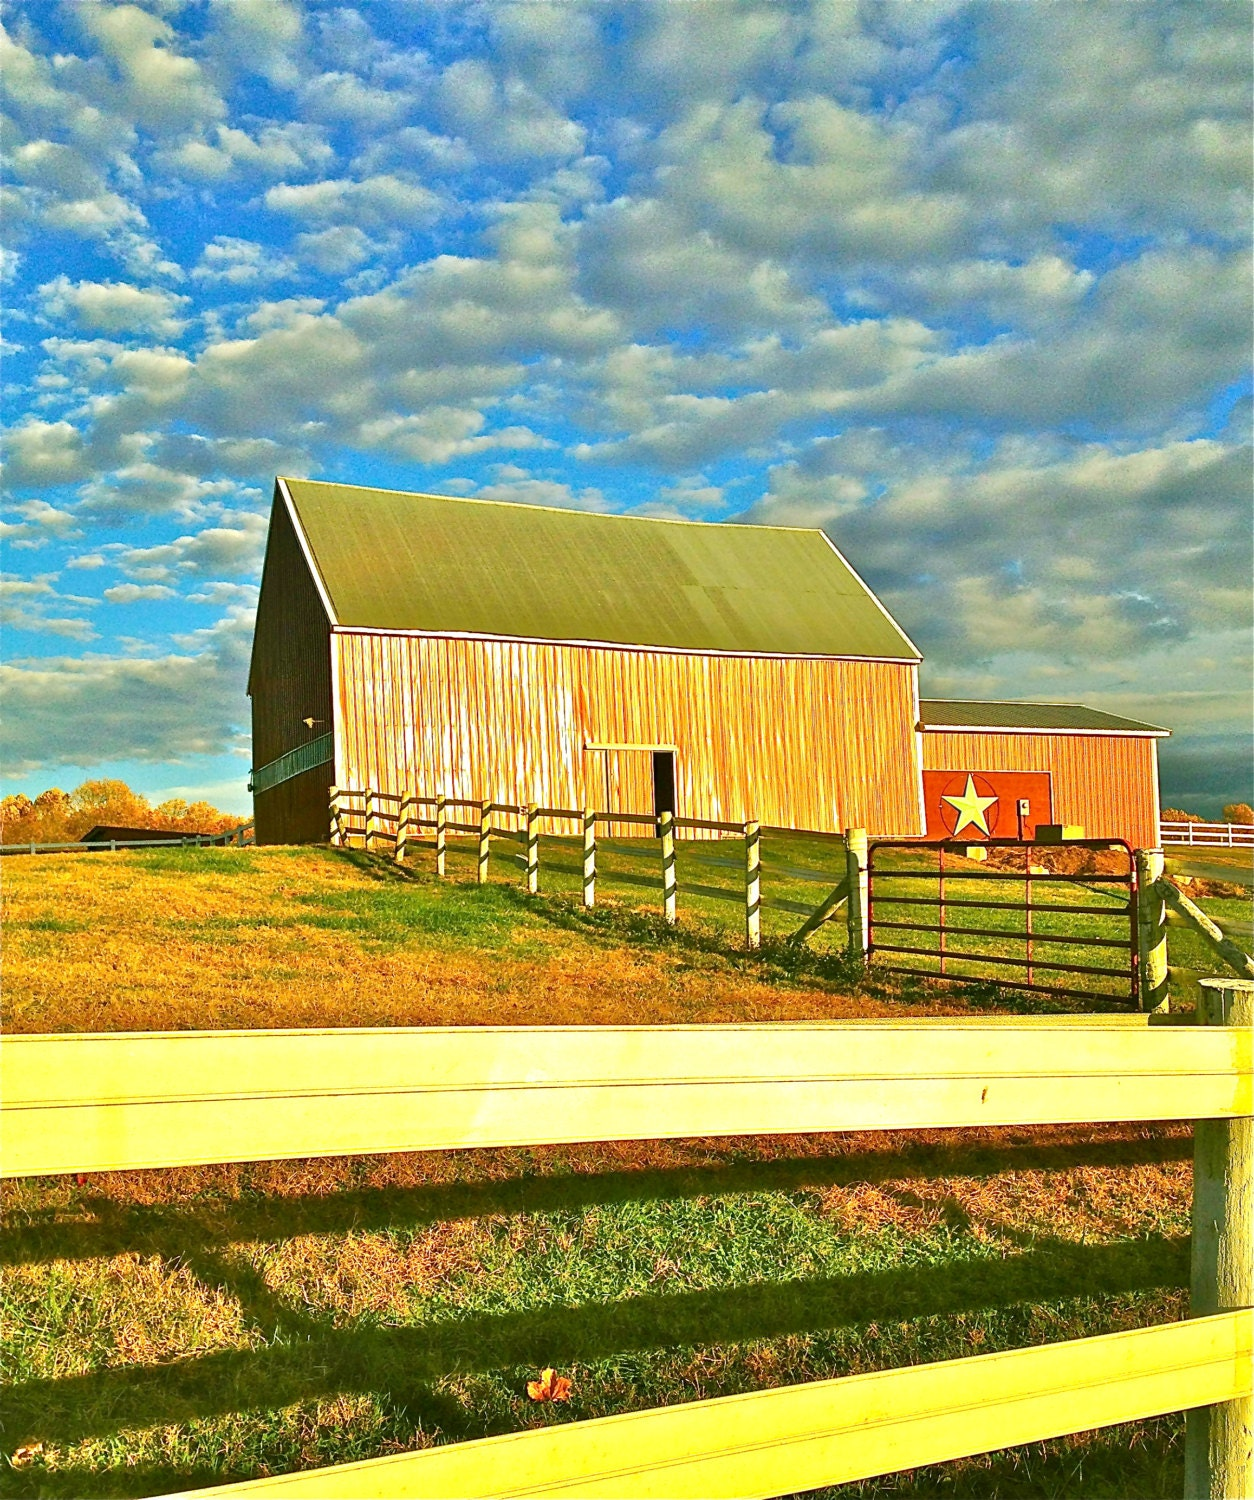 Barn on a Sunny Day Poster Print - LindaKMcDowell